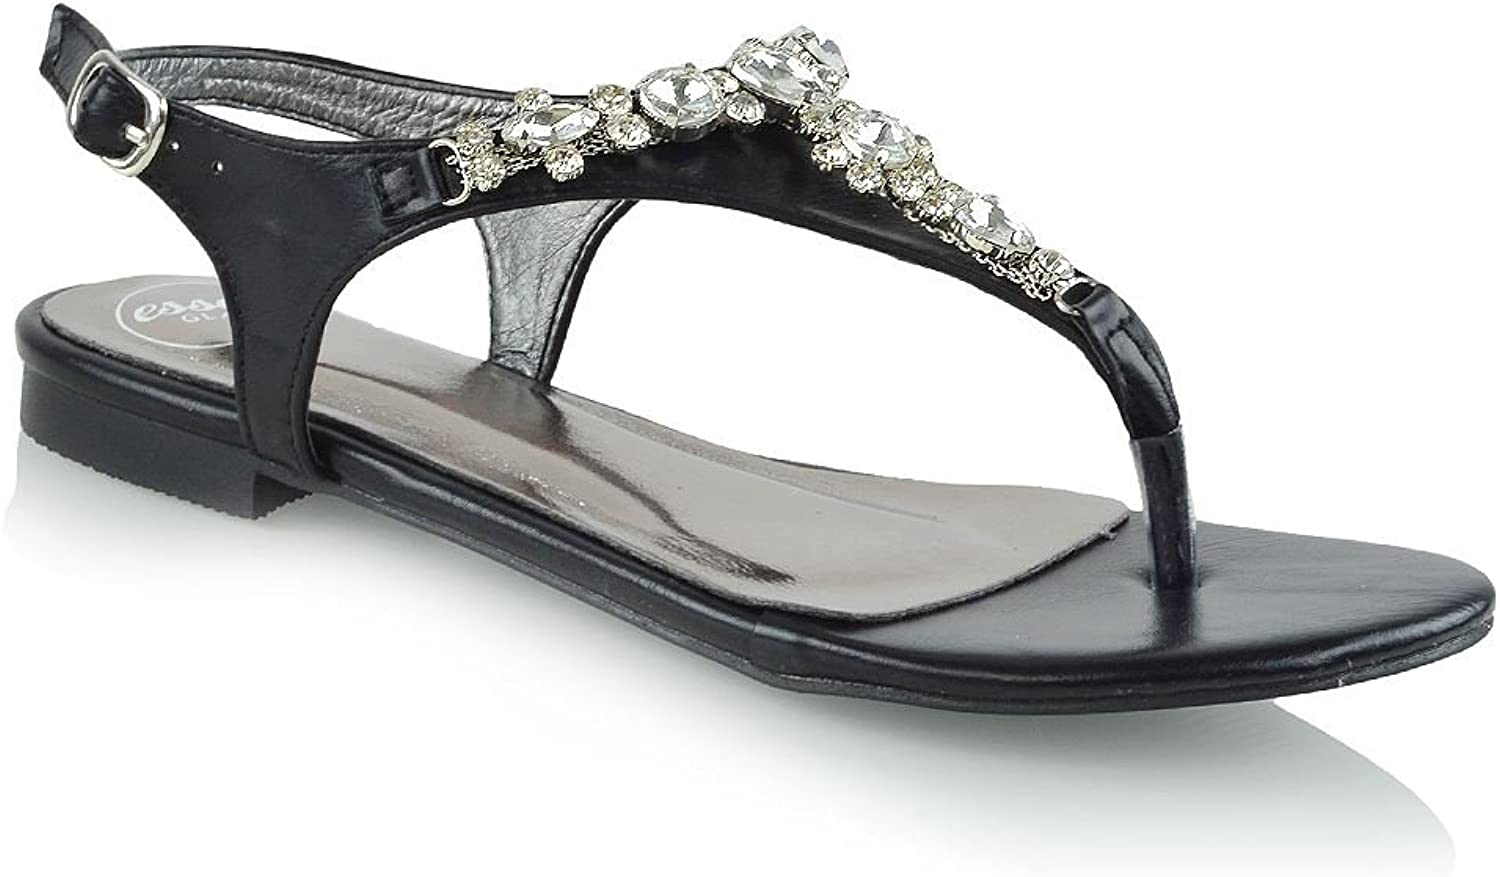 ESSEX GLAM Womens Slingback Sandals Flat Thong Diamante Gem Holiday Sandals